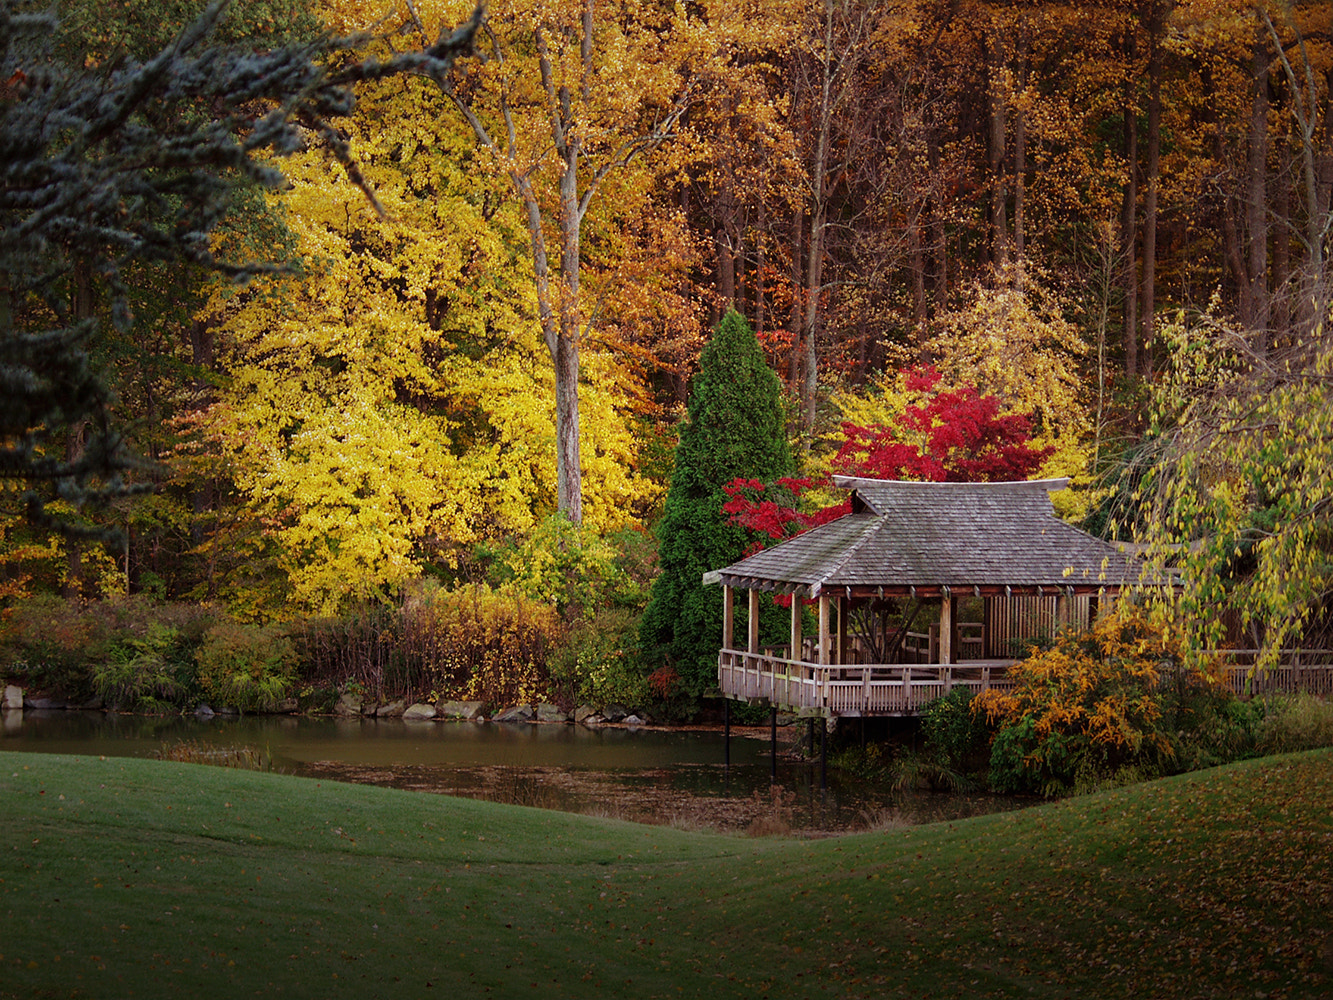 Photograph Teahouse at Brookside Garden by Gregory Cross on 500px